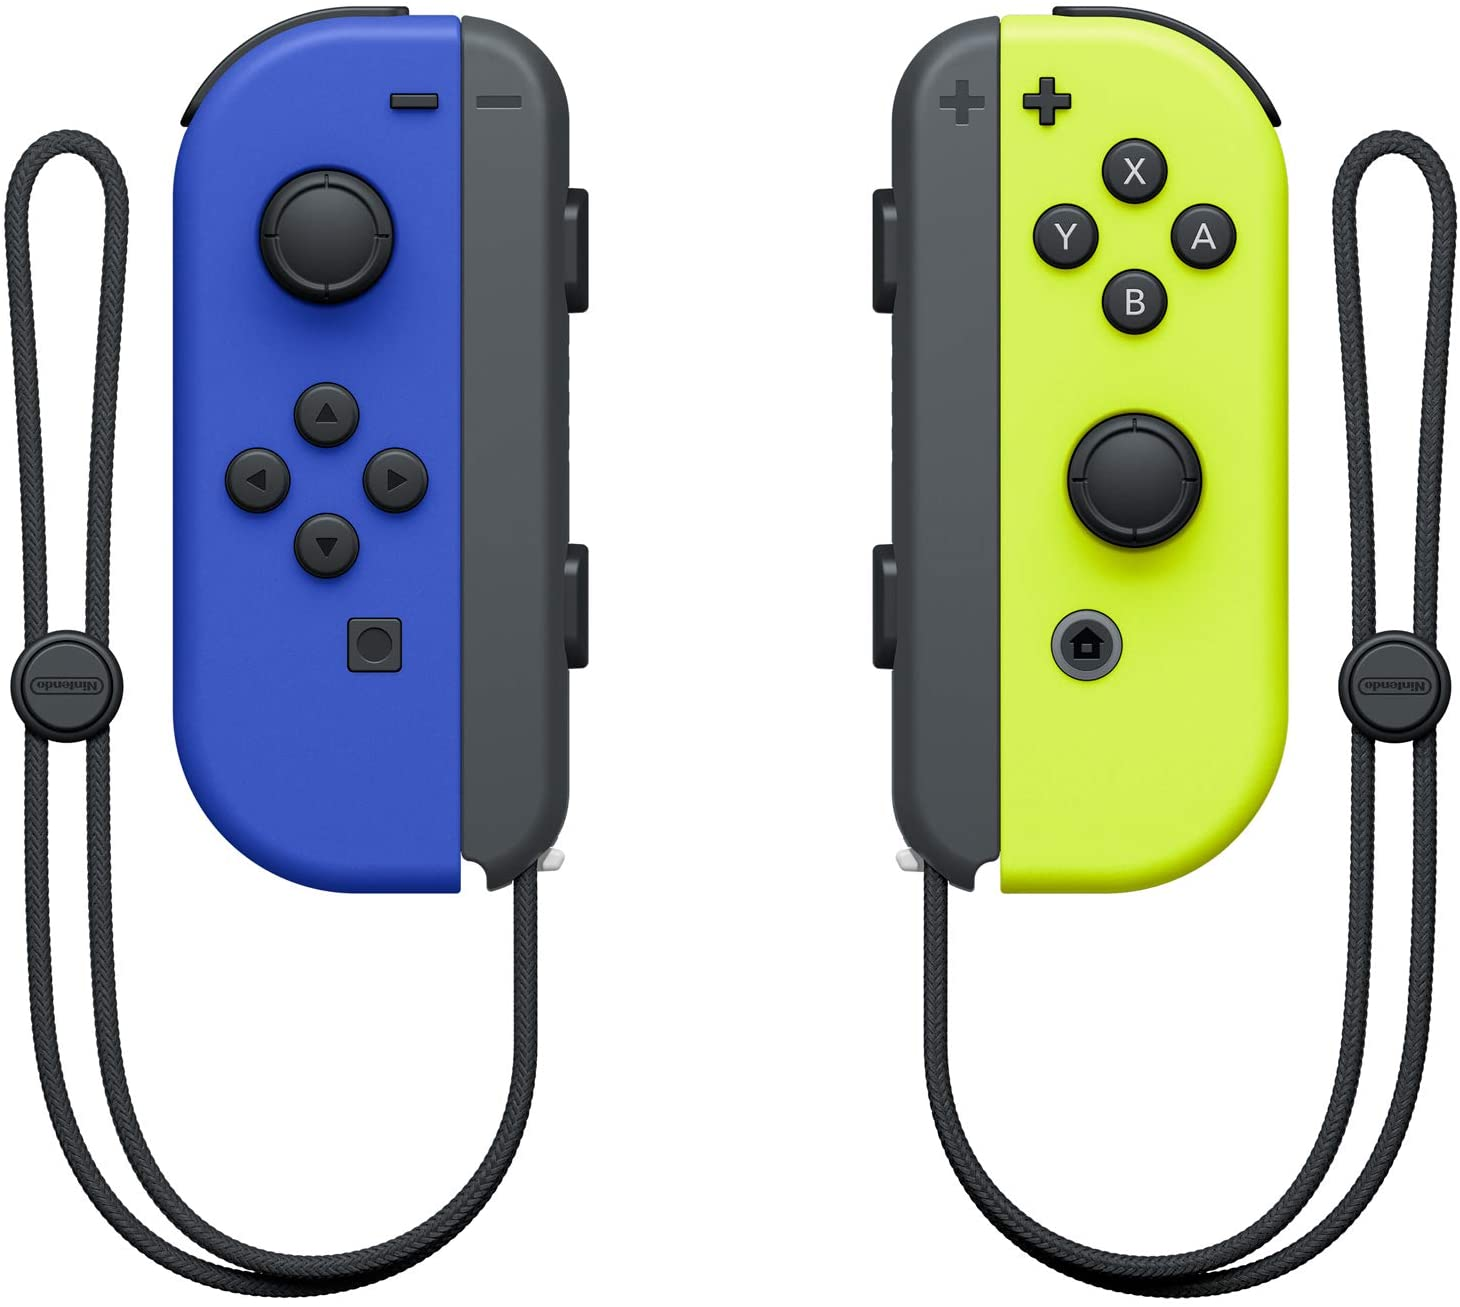 SWITCH JOY-CON CONTROLLER BLUE (L) & NEON YELLOW (R) (NINTENDO)